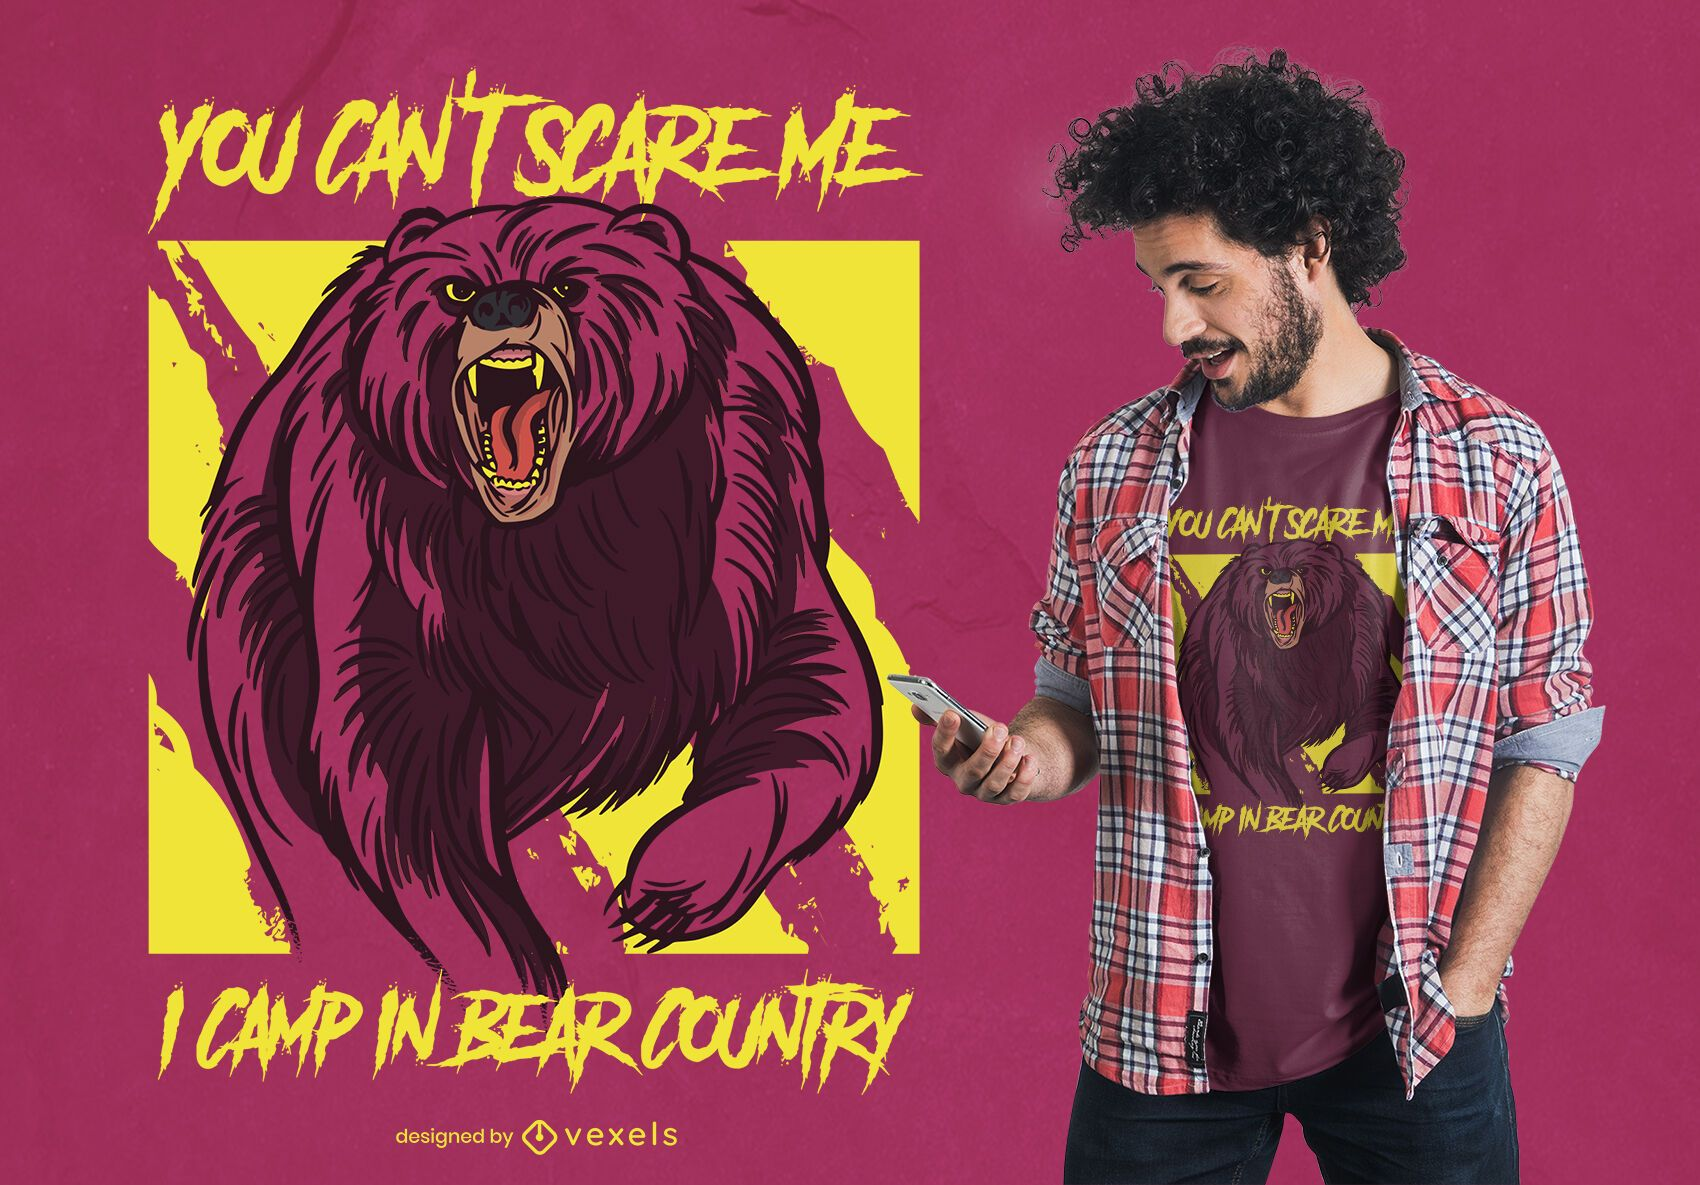 You can't scare me t-shirt design